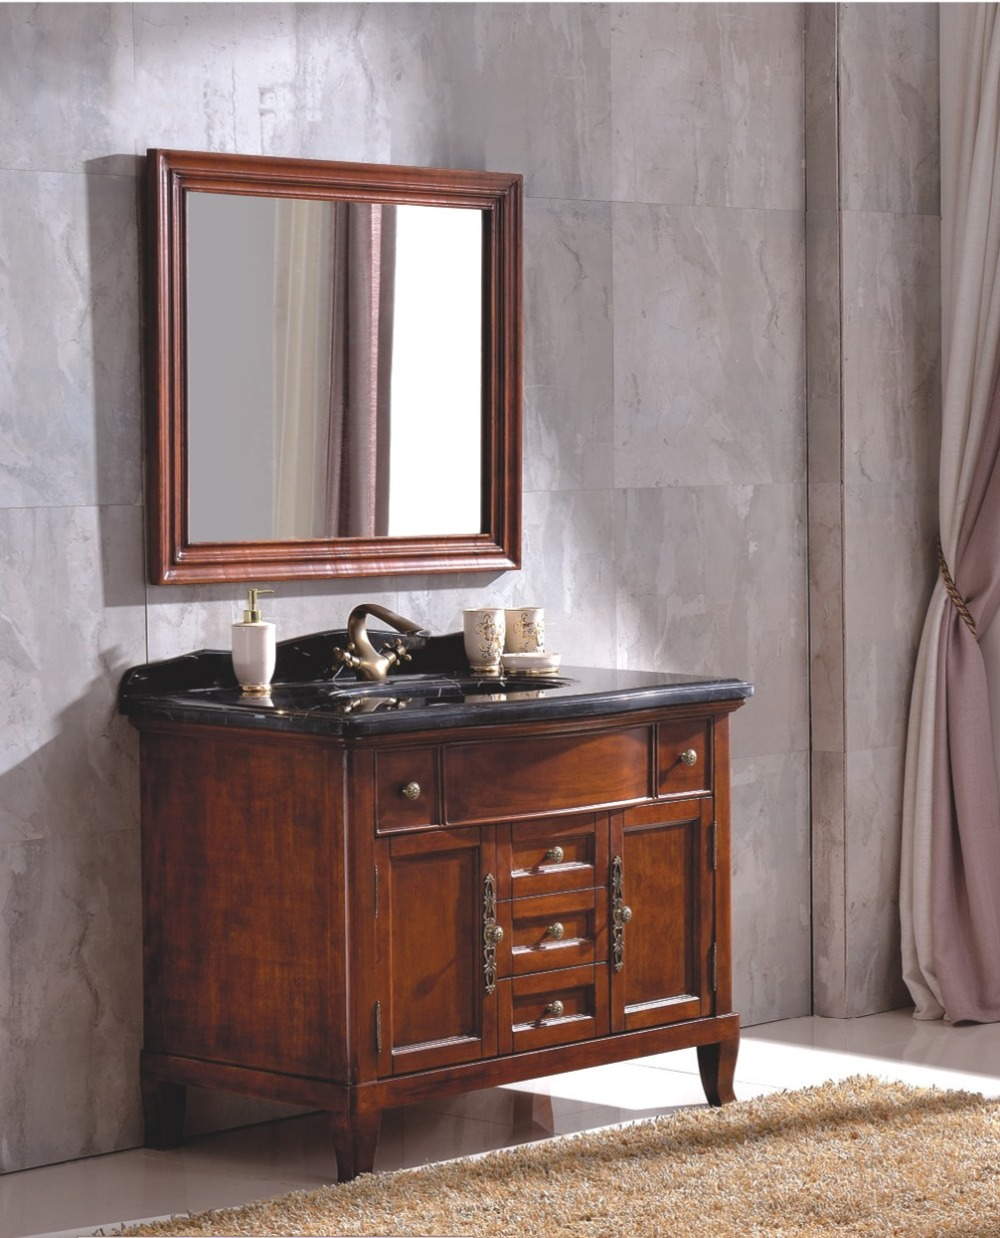 Antique Style Rubber Wood Bathroom Cabinet with Ceremic Top 0281-B-6009